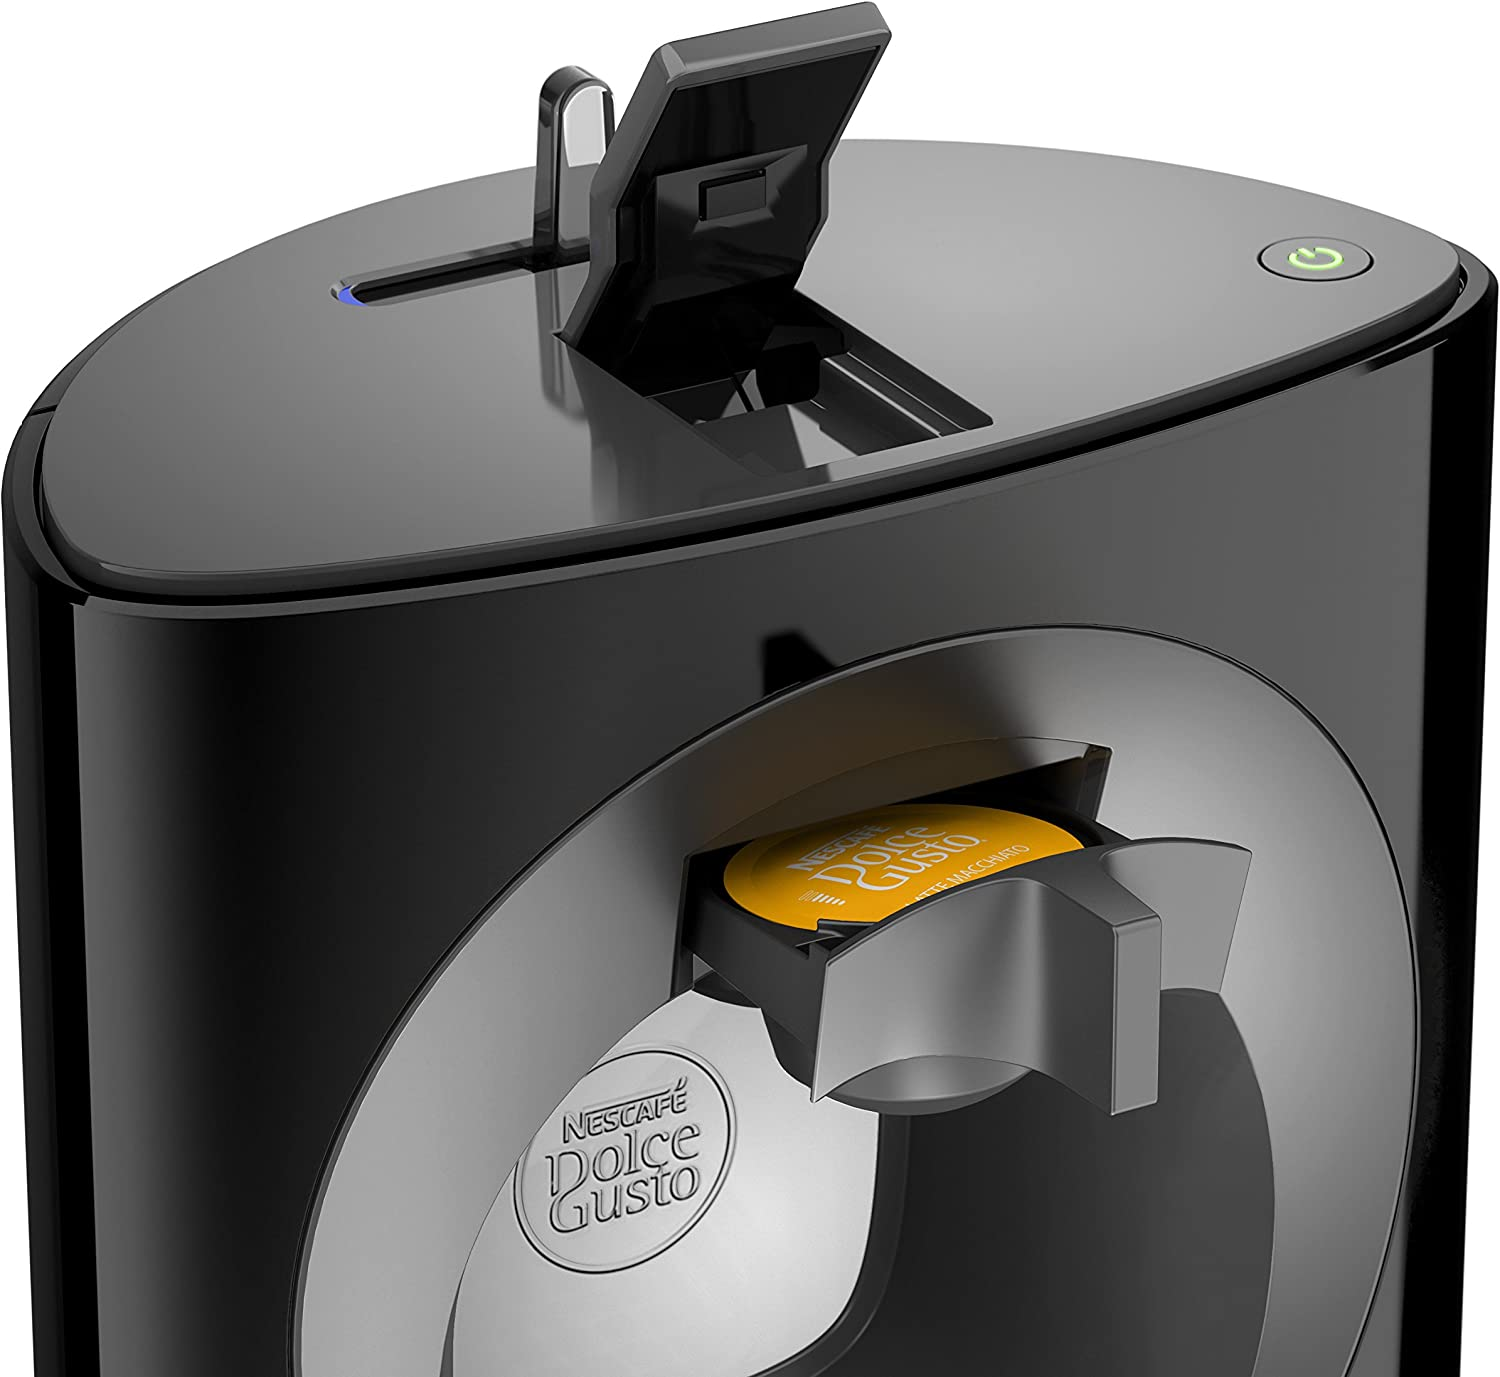 Nescafe Dolce Gusto Oblo Coffee Capsule Machine by Krups - Black